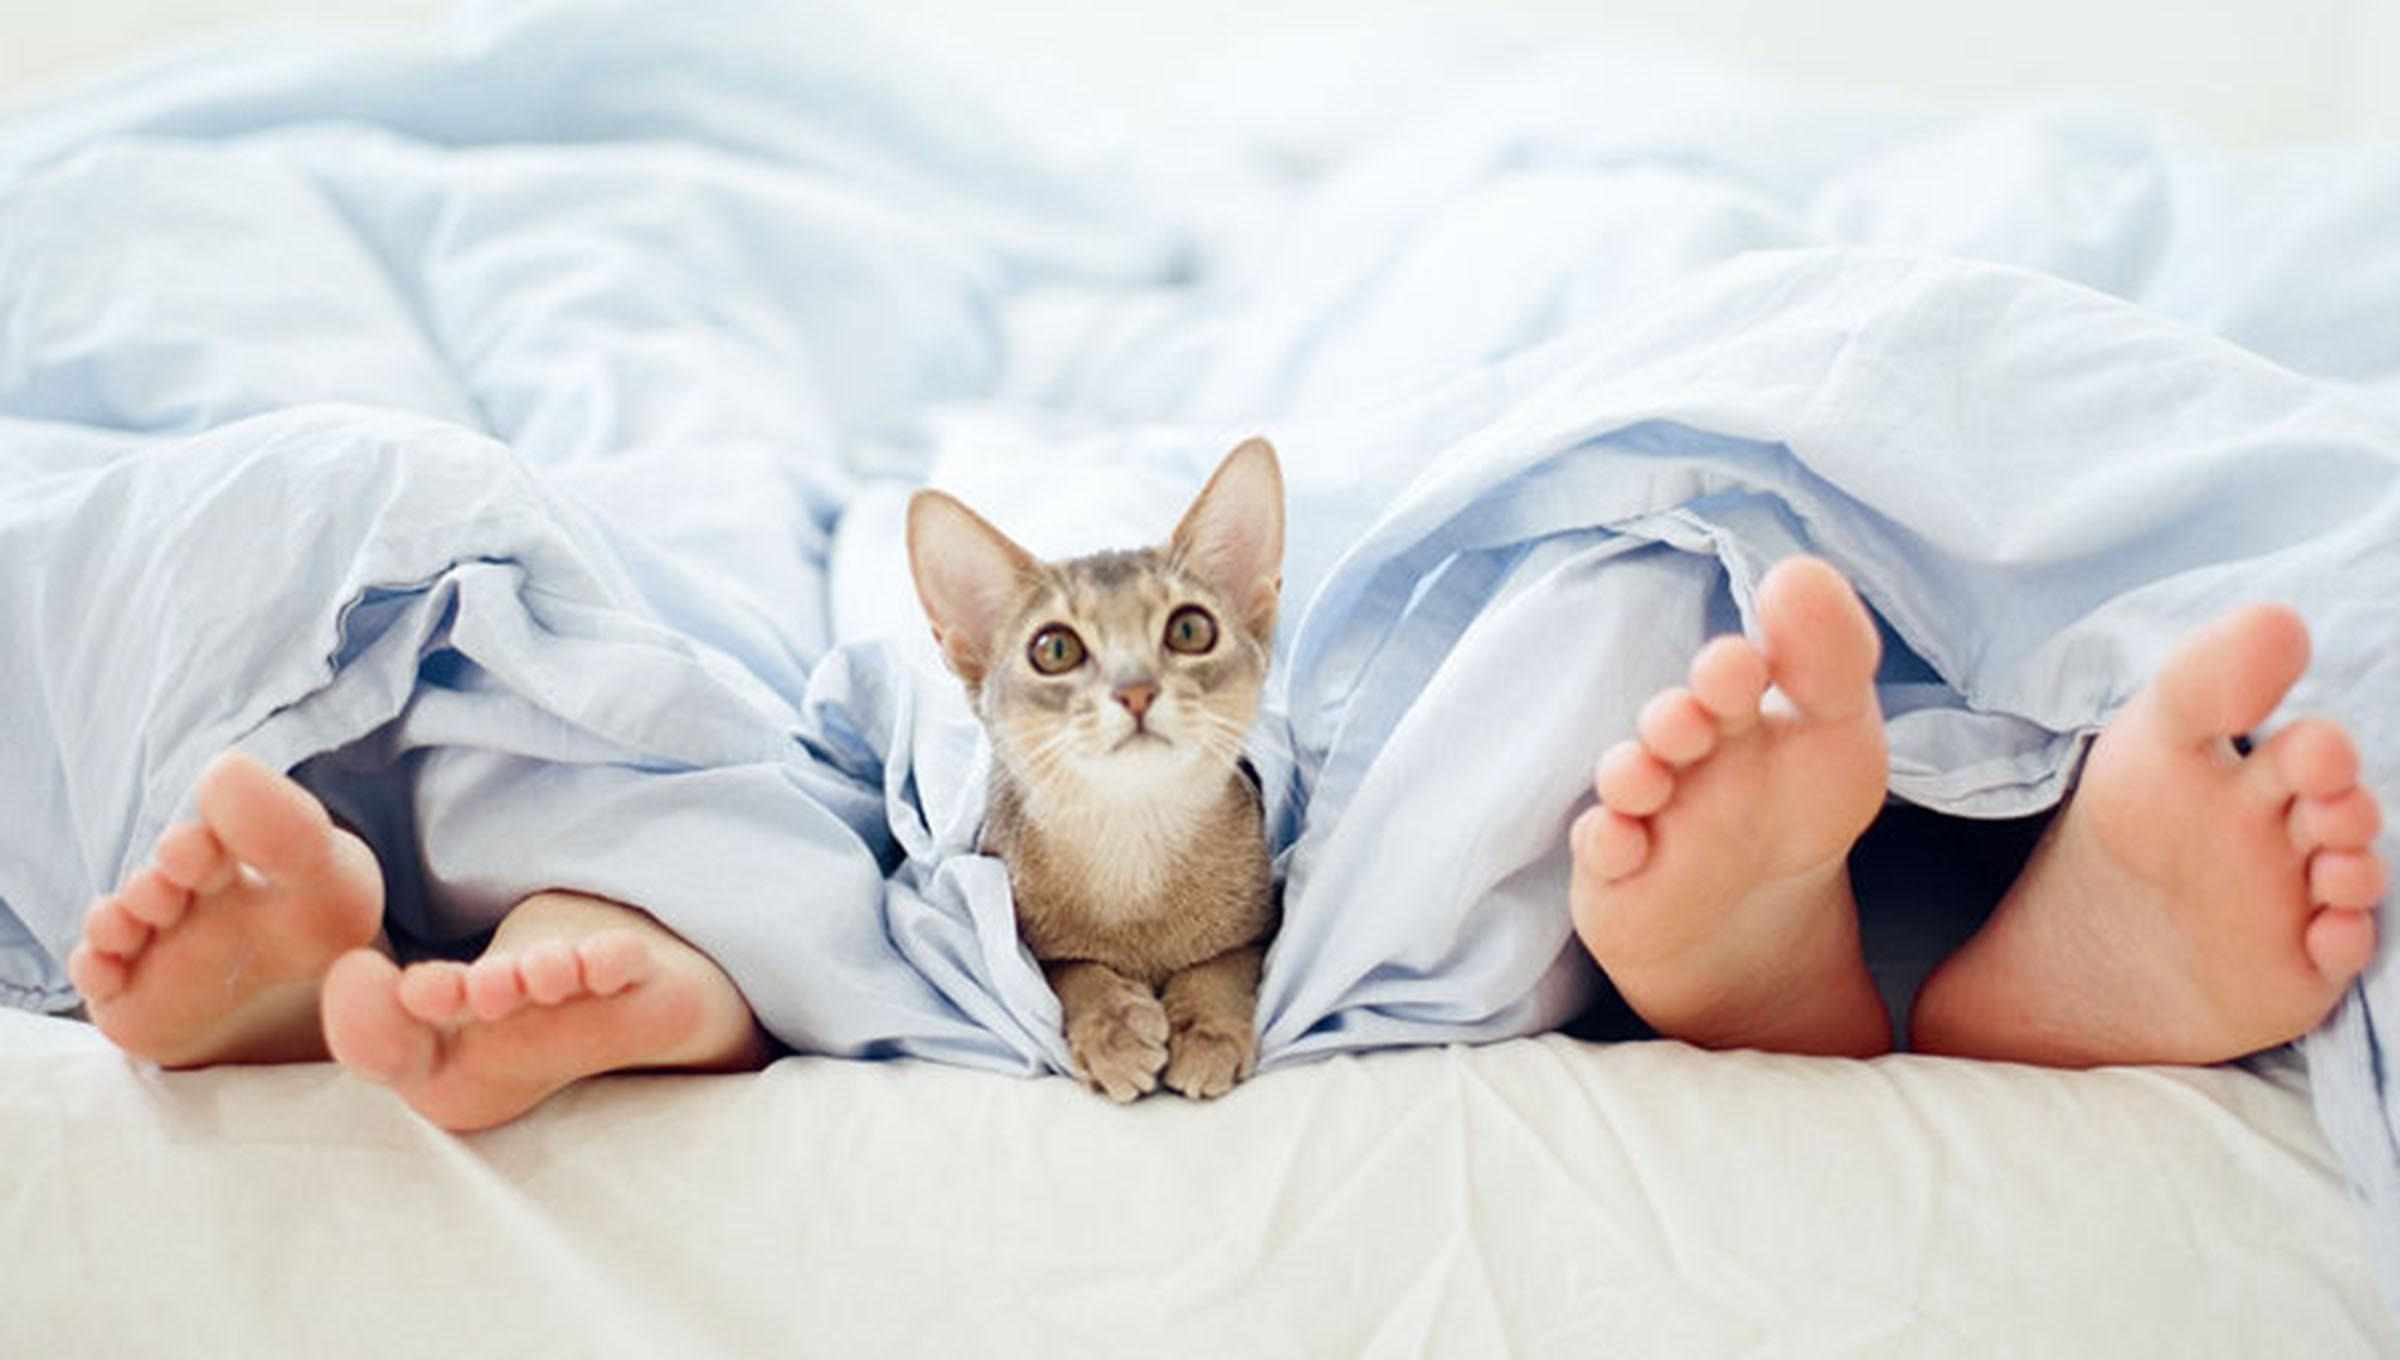 Cat peering from between two pairs of feet in bed